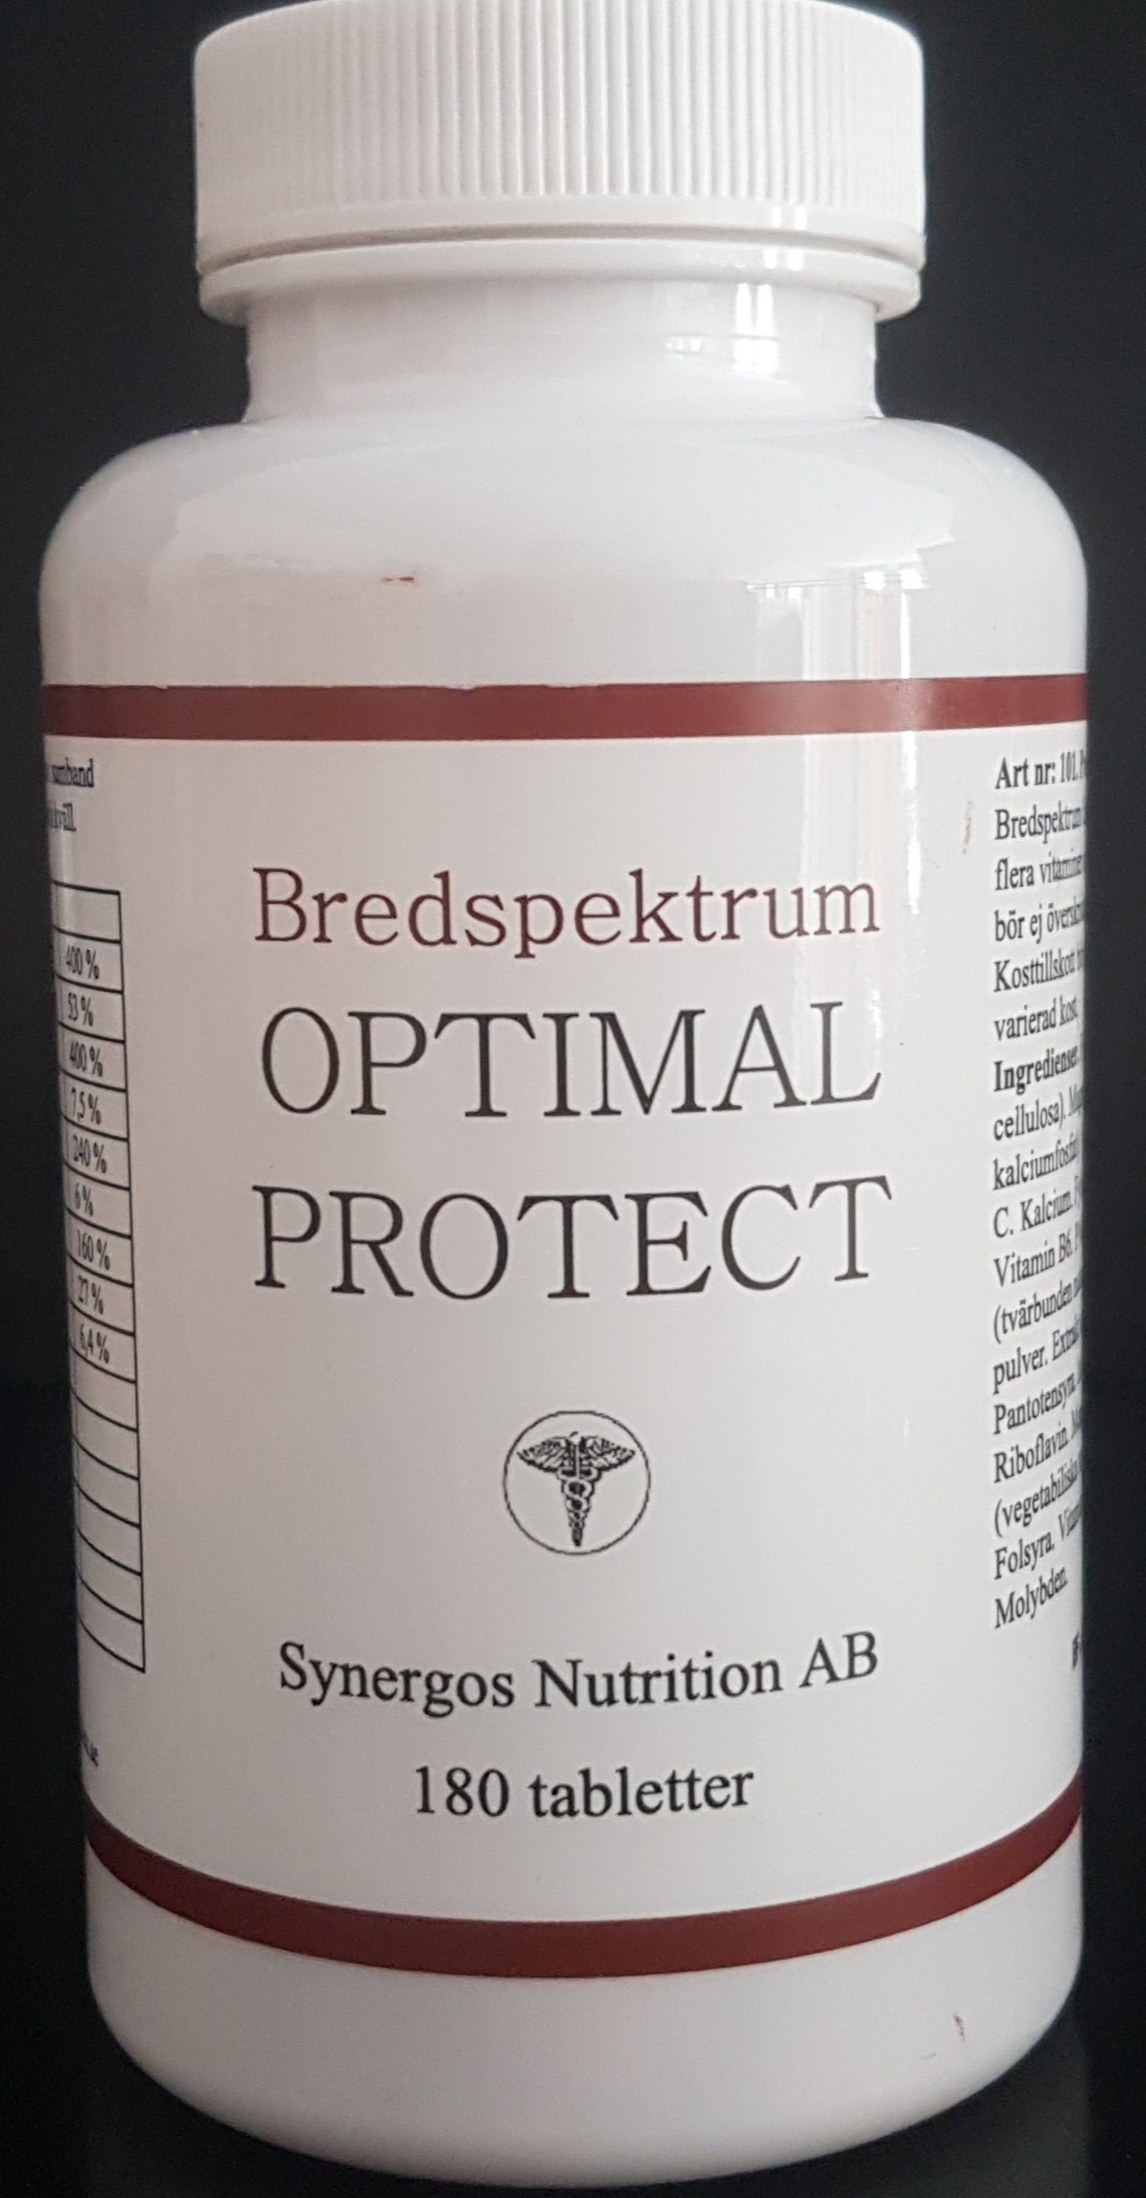 Optimal Protect - Bredspektrum vitaminer och minerlaer